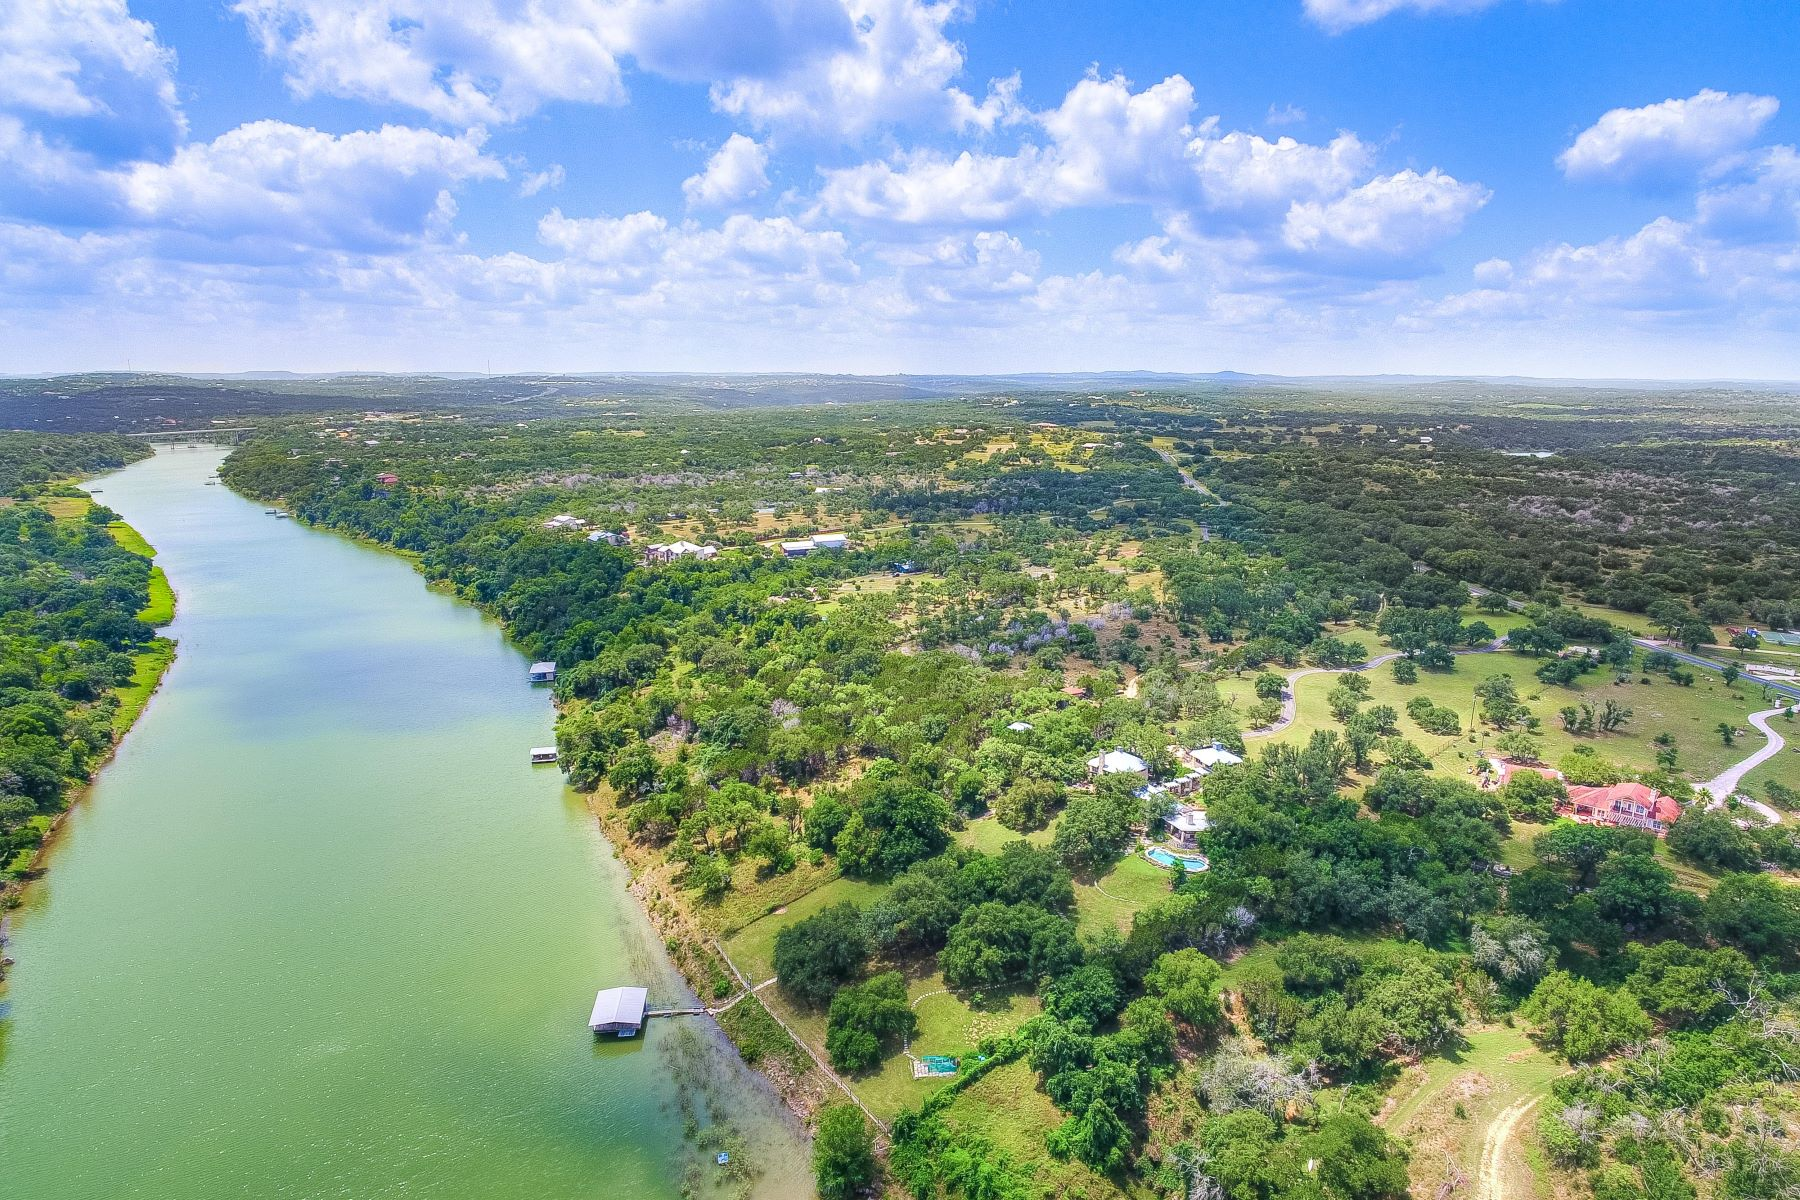 Single Family Homes for Sale at Tranquil Waterfront Estate on the Pedernales River 25014 Pedernales Canyon Trail Spicewood, Texas 78669 United States